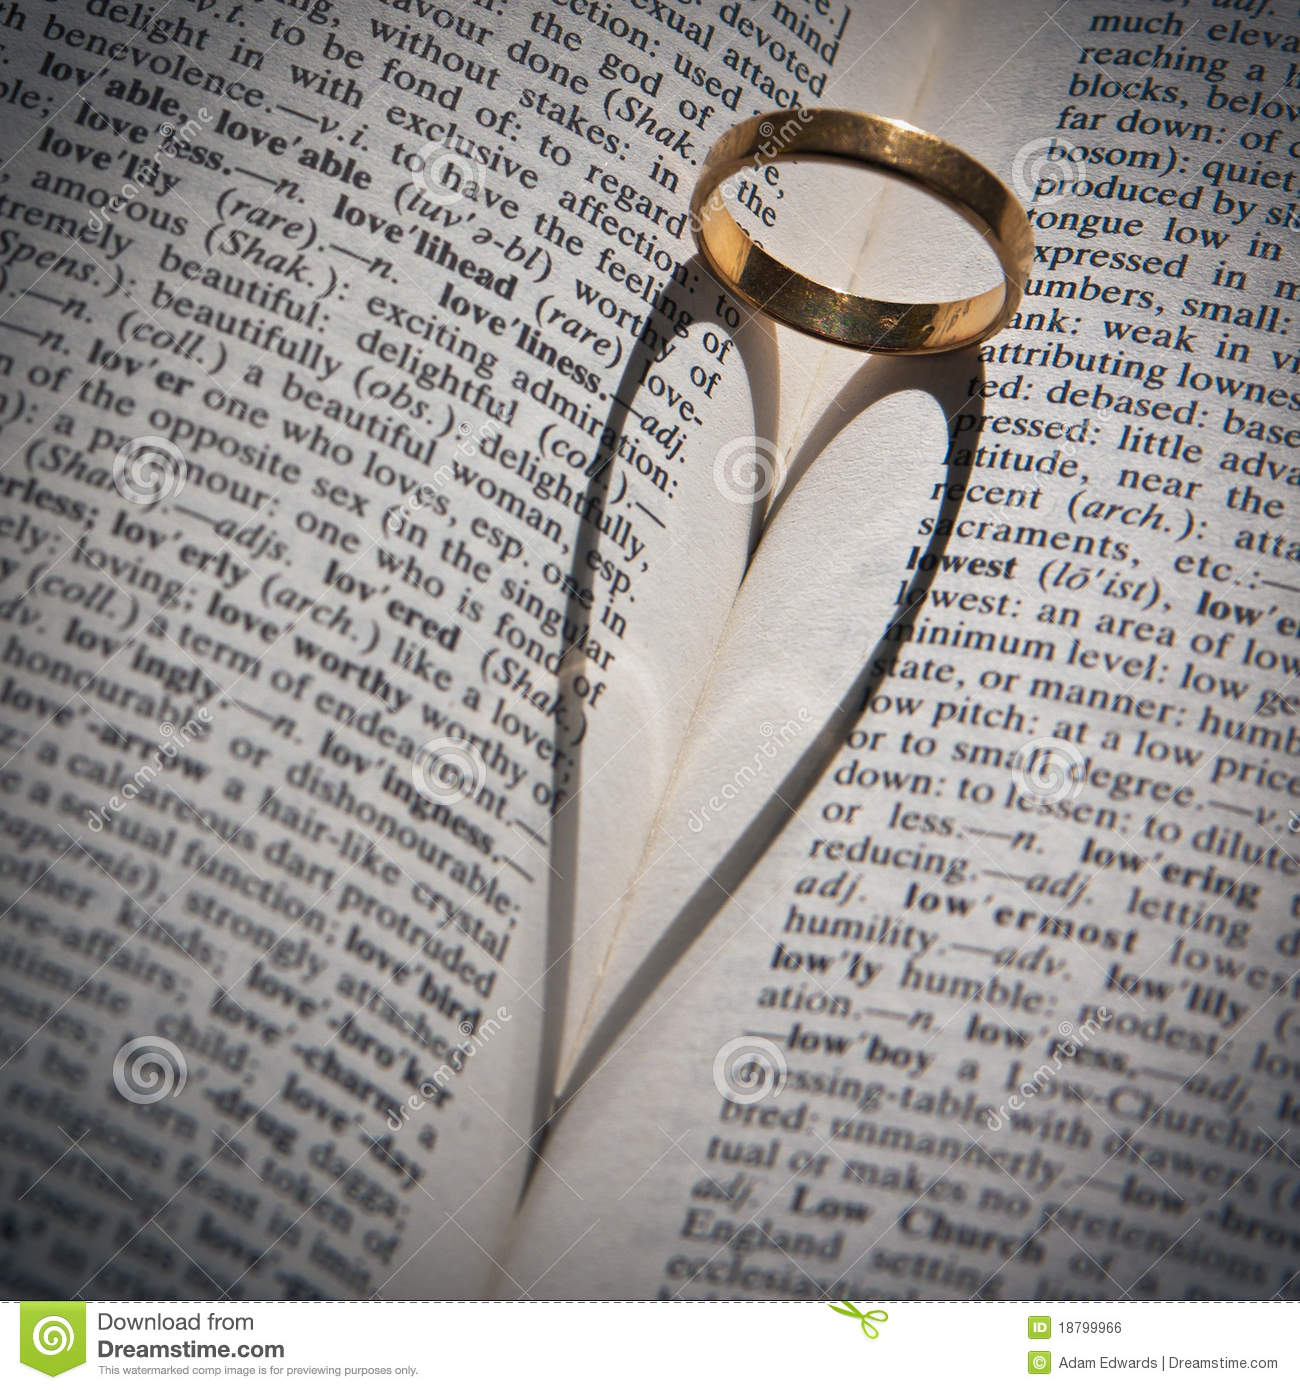 Ring Casting A Heartshaped Shadow In A Book Stock Photo Image of